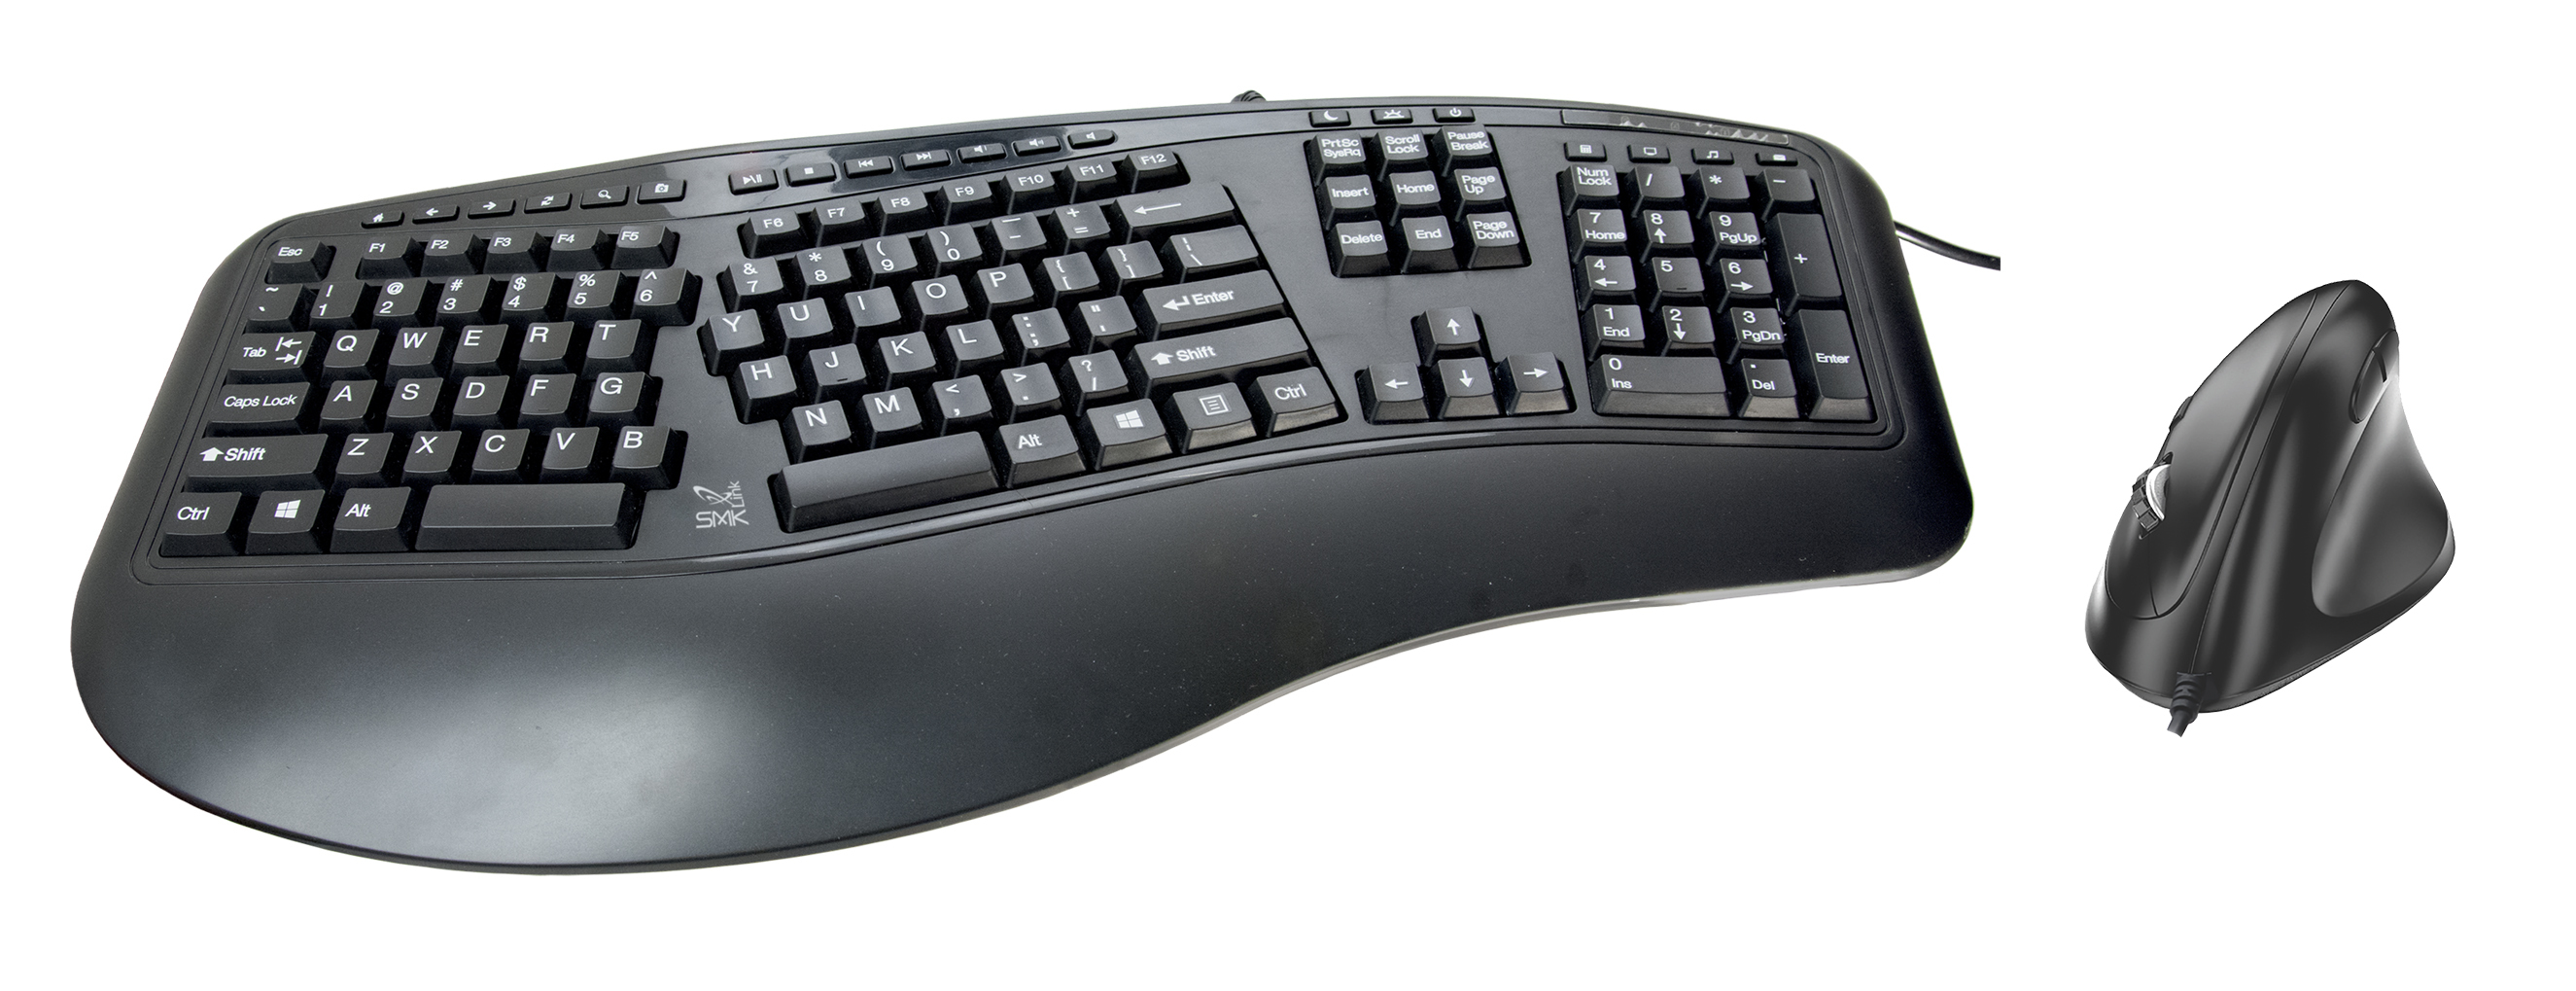 Smk Link Adds Ergonomic Usb Keyboard And Mouse To Family Of Taa